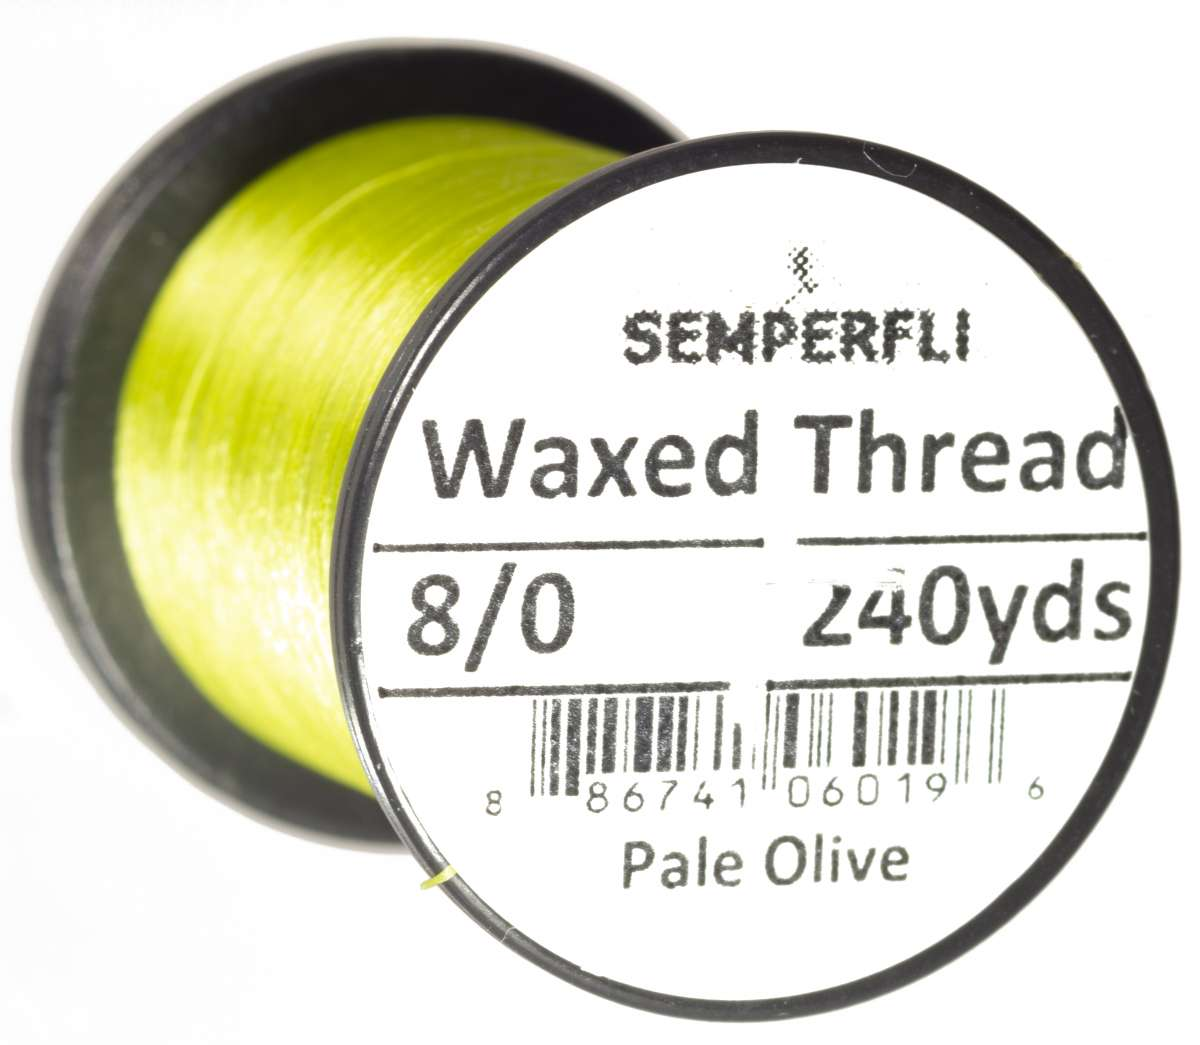 8/0 Classic Waxed Thread Pale Olive Sem-0400-1385